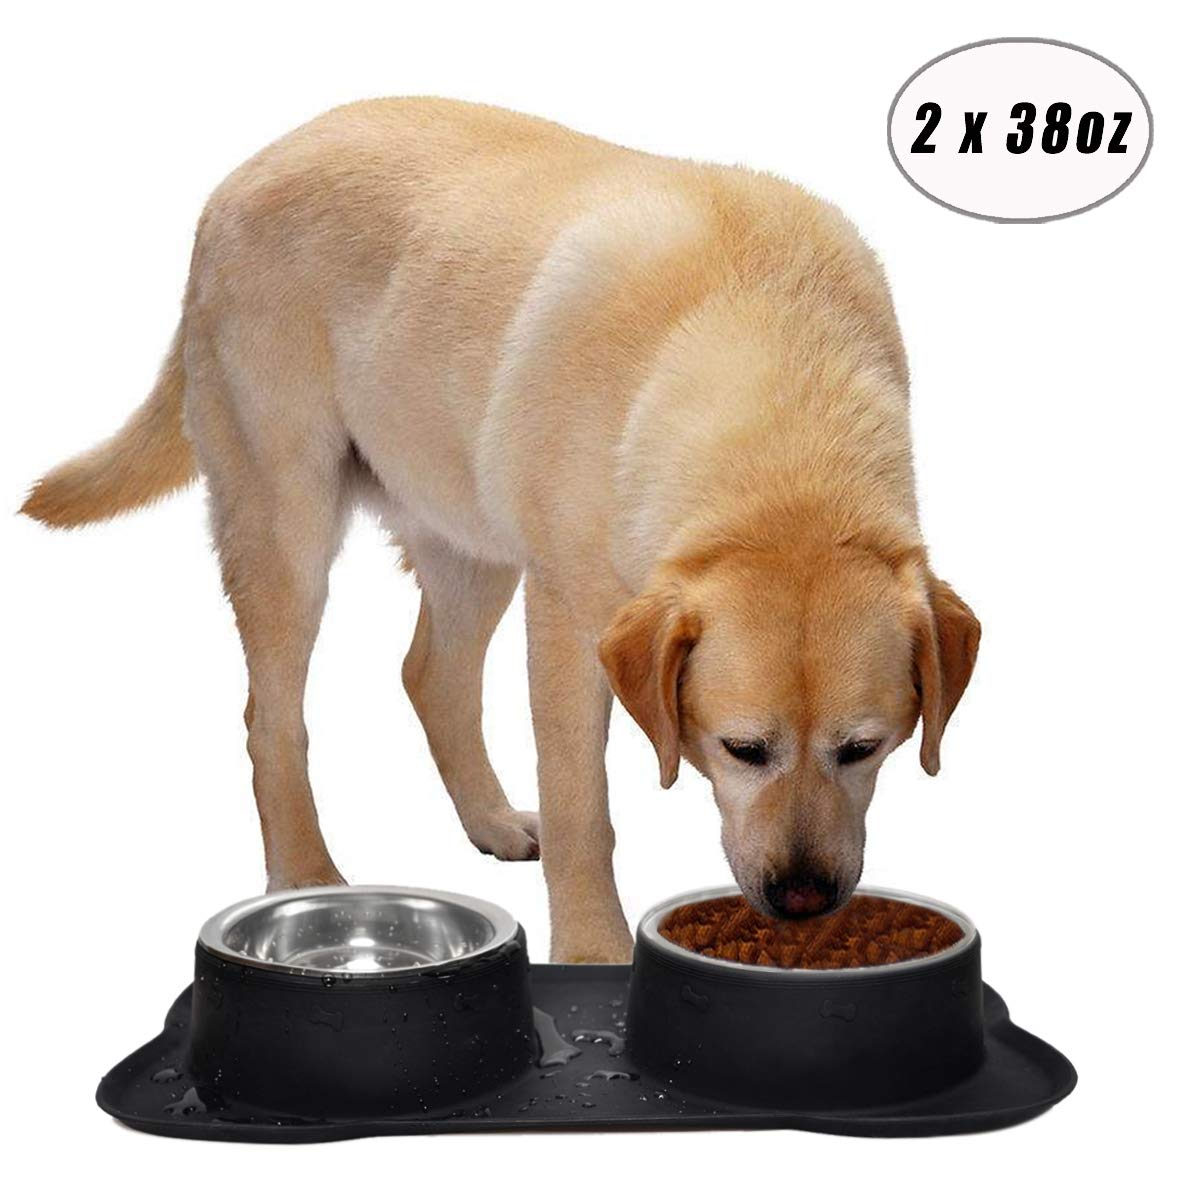 Easeurlife Stainless Steel Dog Bowl Set 2 x 38oz No Spill/Non-Skid Silicone Mat Double Pet Bowls Set Medium Dogs, Each Bowl about 1100ml 2018 Newest Version, Black